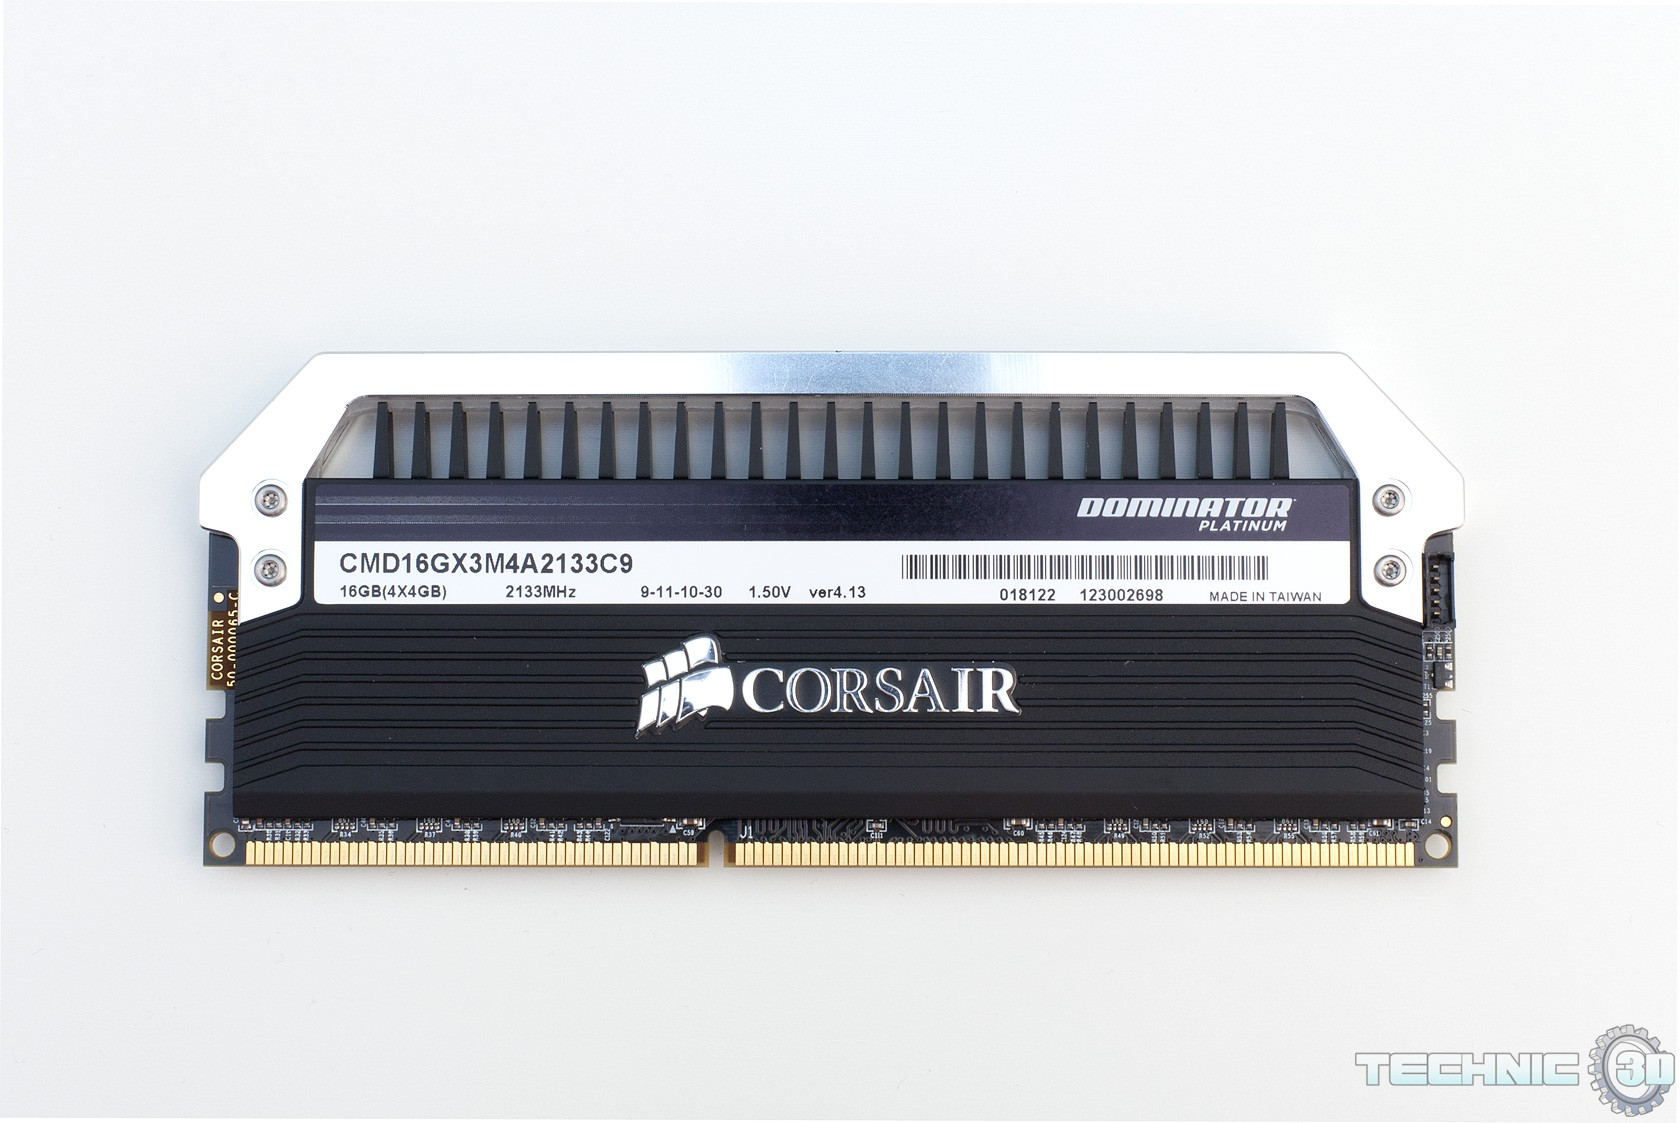 corsair dominator platinum ddr3 2133 cl9 cmd16gx3m4a2133c9 8